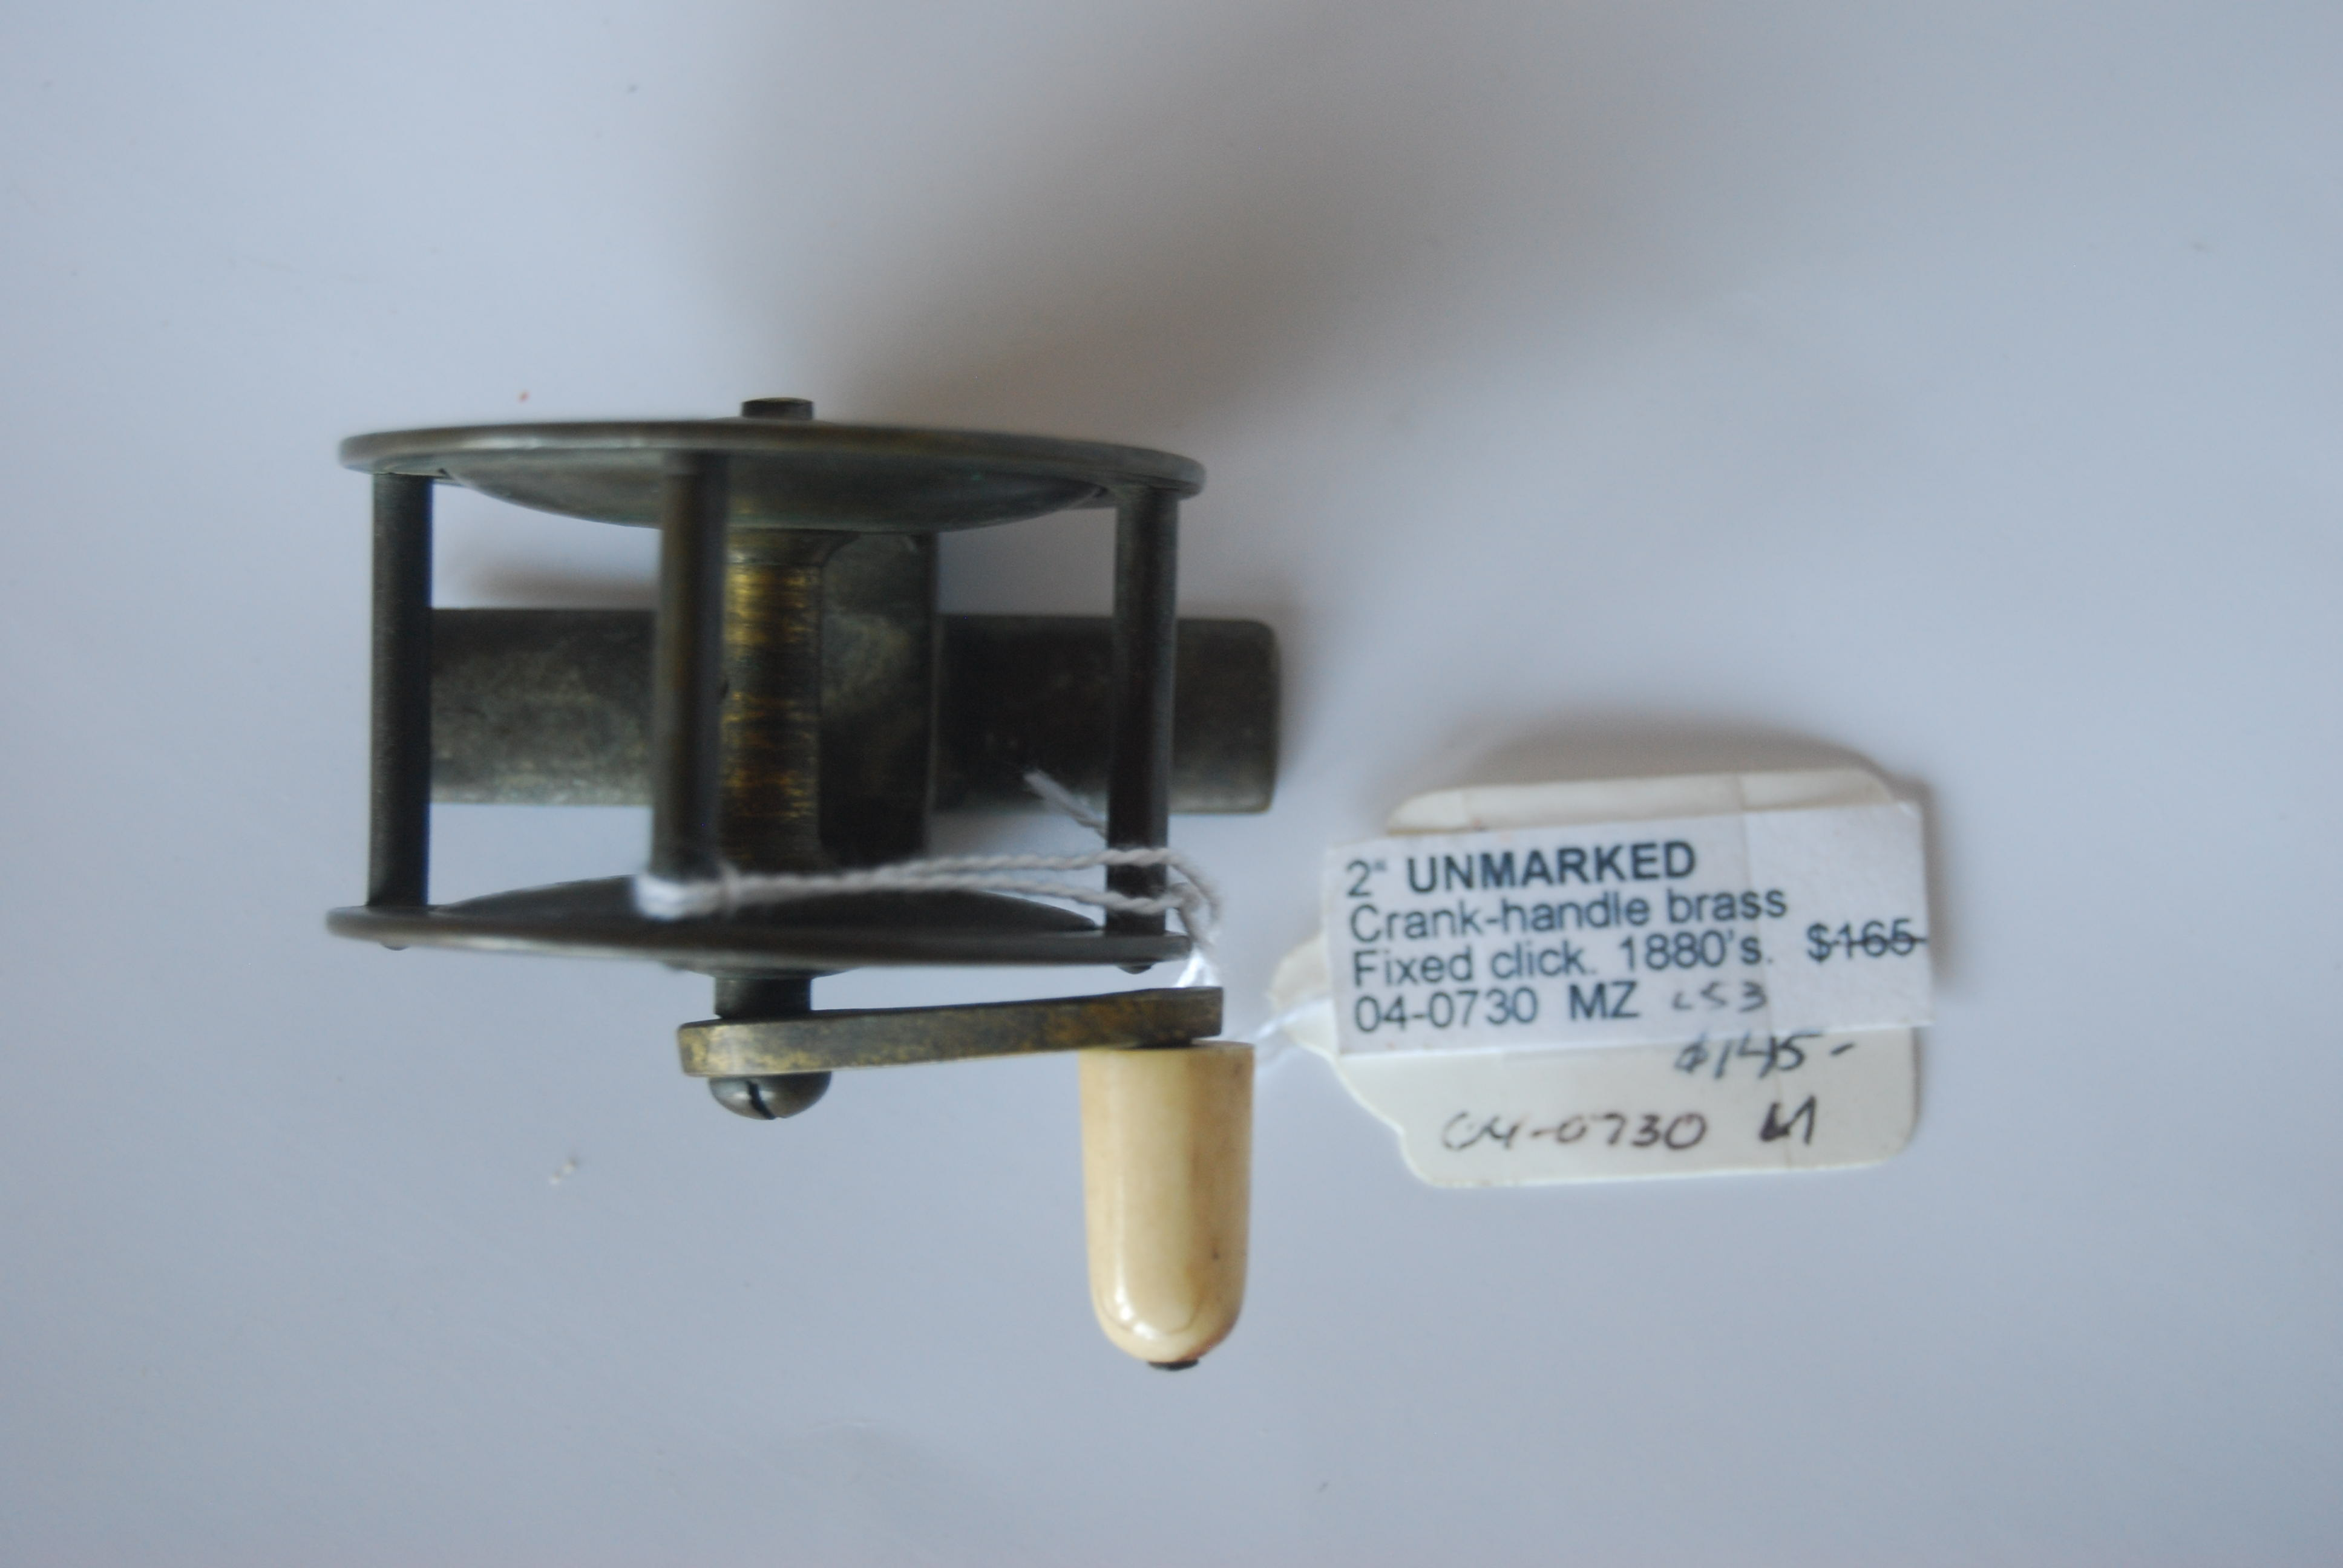 "Image for 2"" UNMARKED Curved crank-handle brass; Ivory  knob;  Fixed click. Circa 1880's. 5 oz."